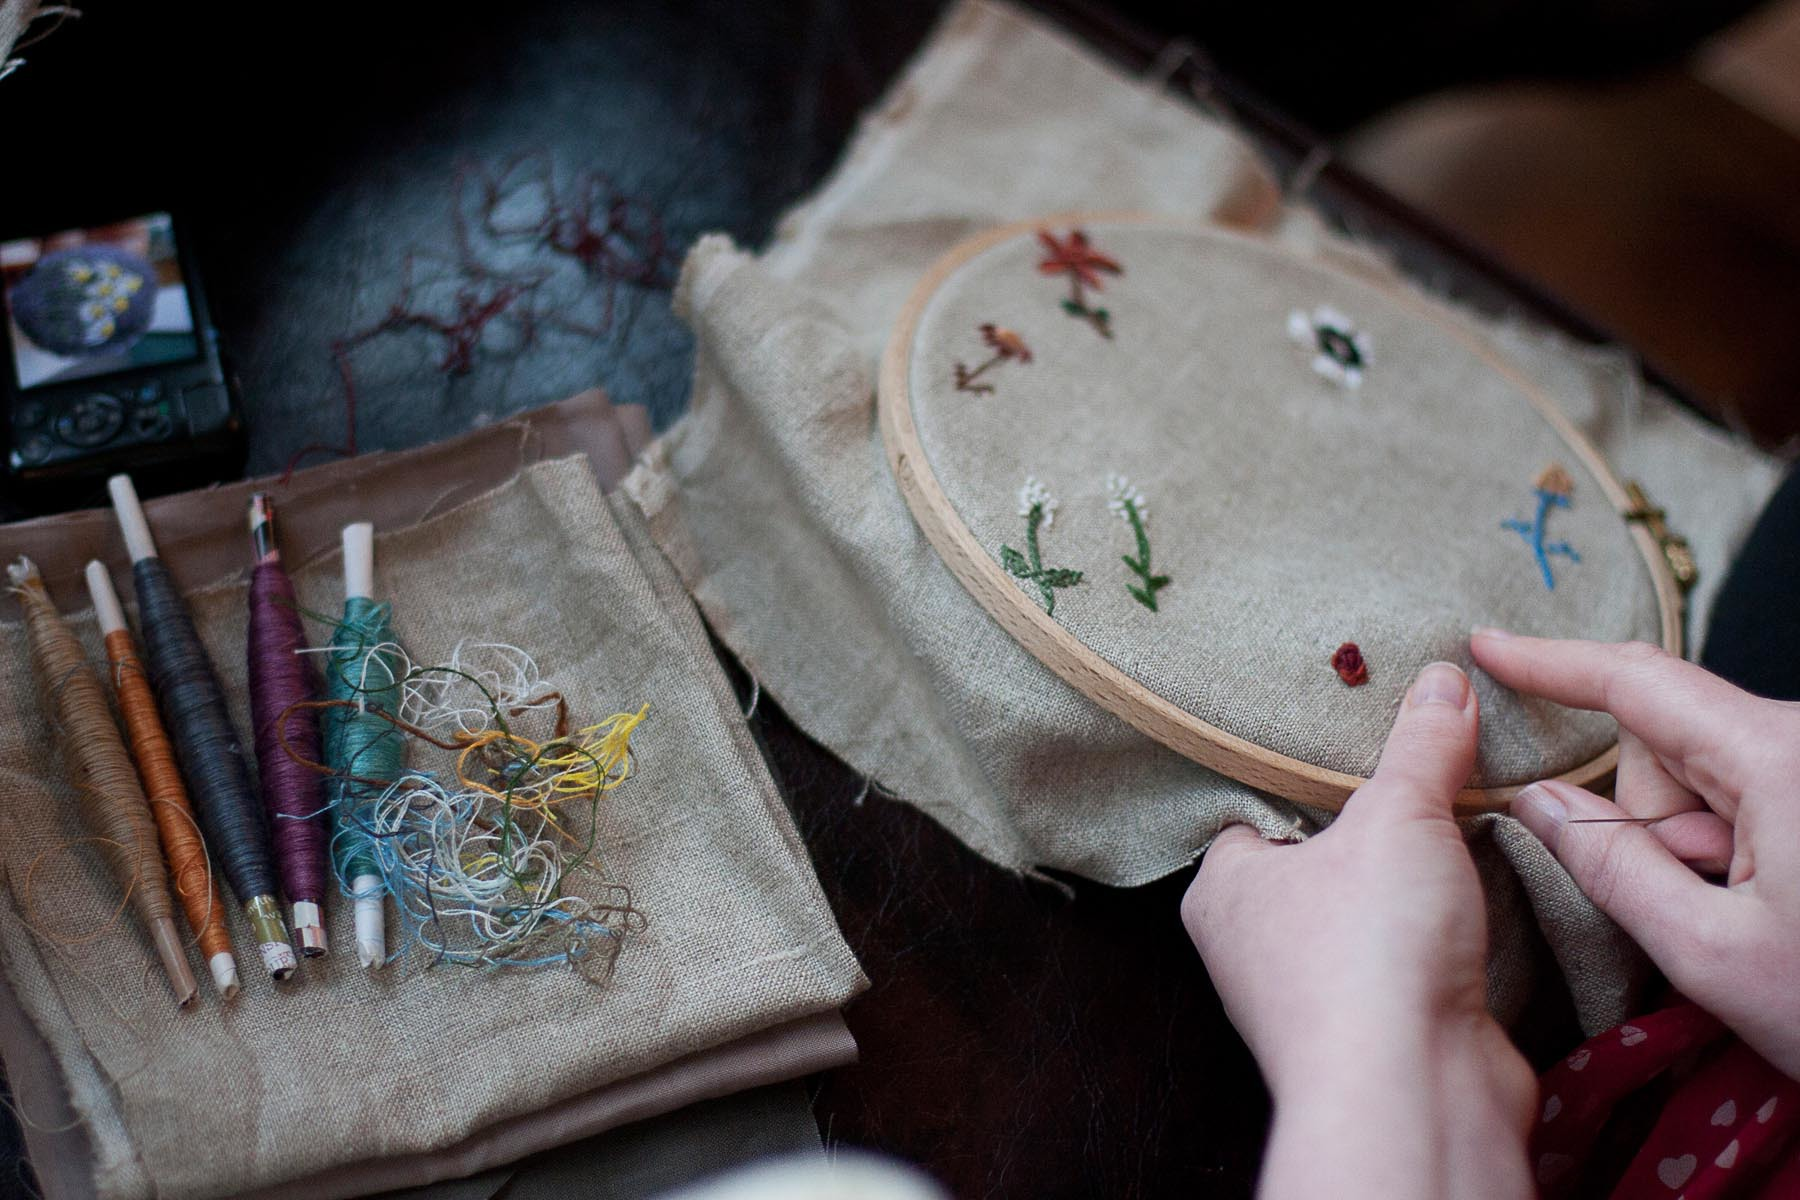 Embroidery from the Natural World. Photo by Siri Hayes